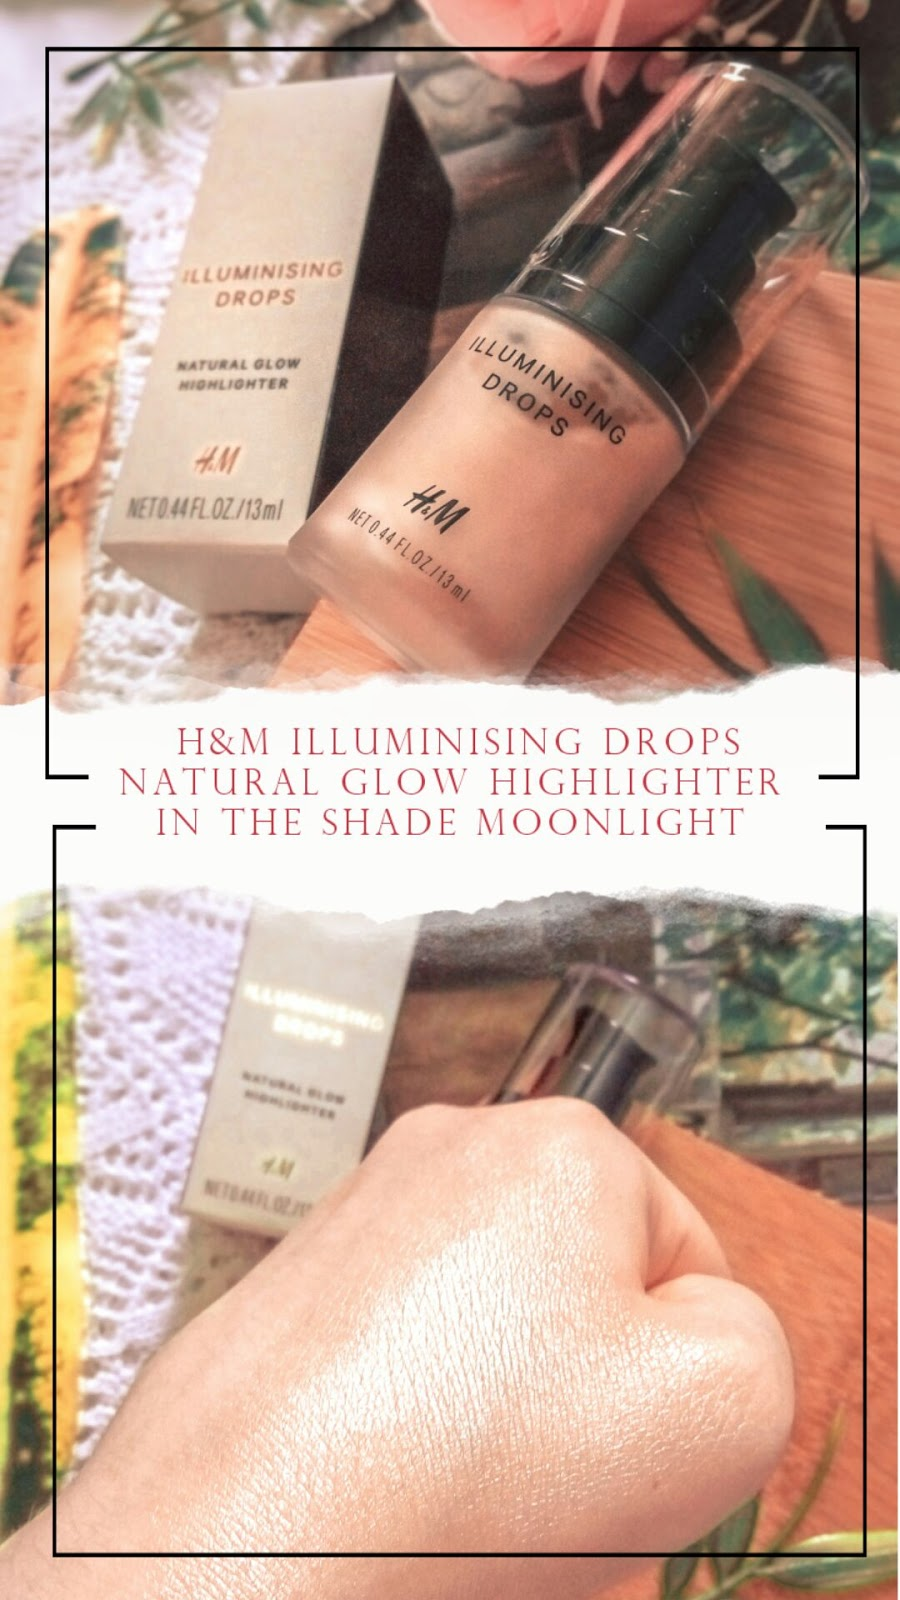 H&M Water Sprite, Life's a peach, Kobai Azalea, Cup of Joe, Illuminising Drops - Moonlight, Scintillating eye colour - Girl's best friend - review